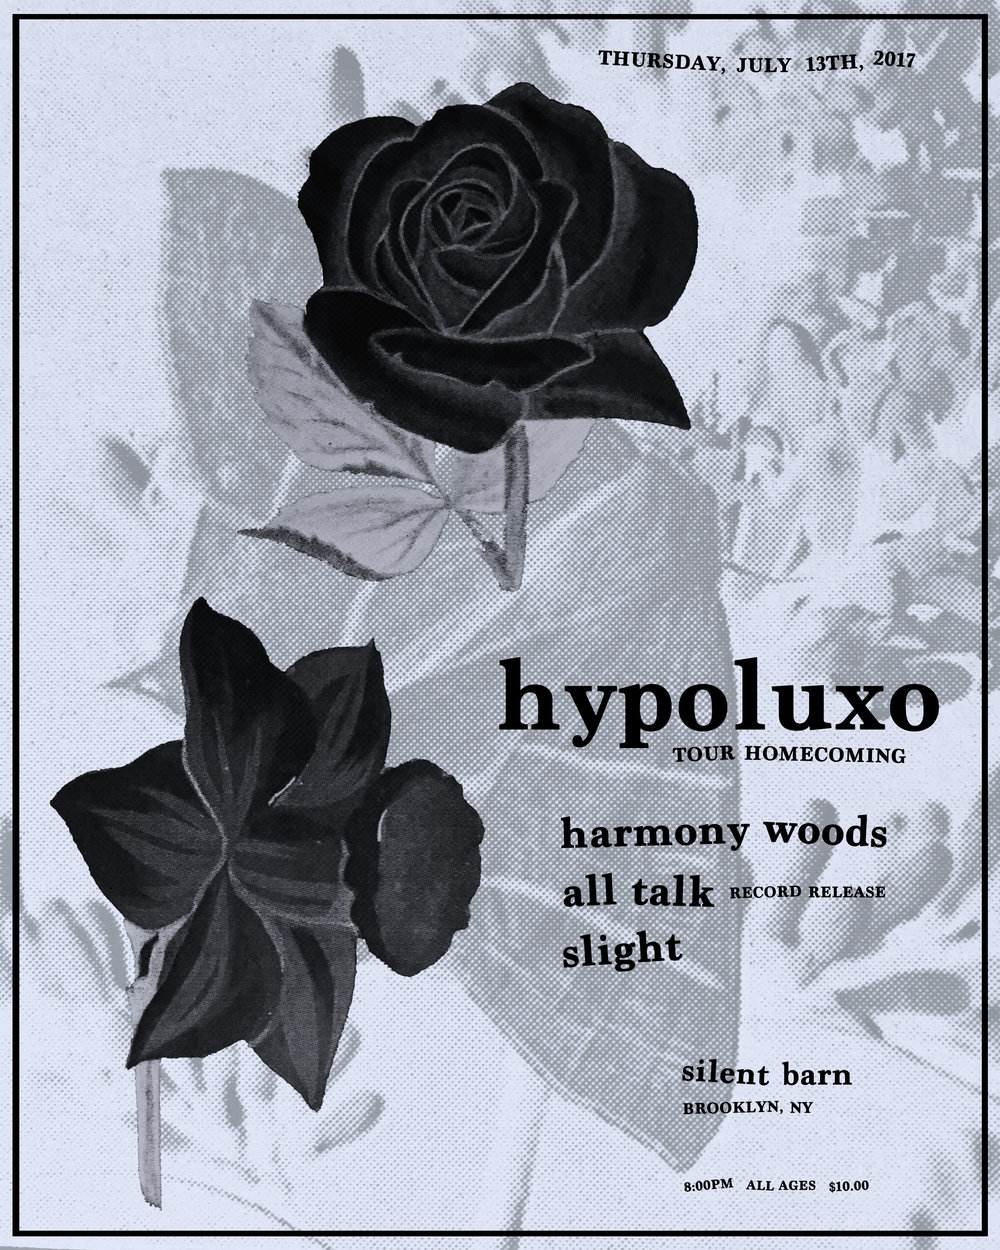 Flyer-Hypoluxo613-LightBlue copy.jpg